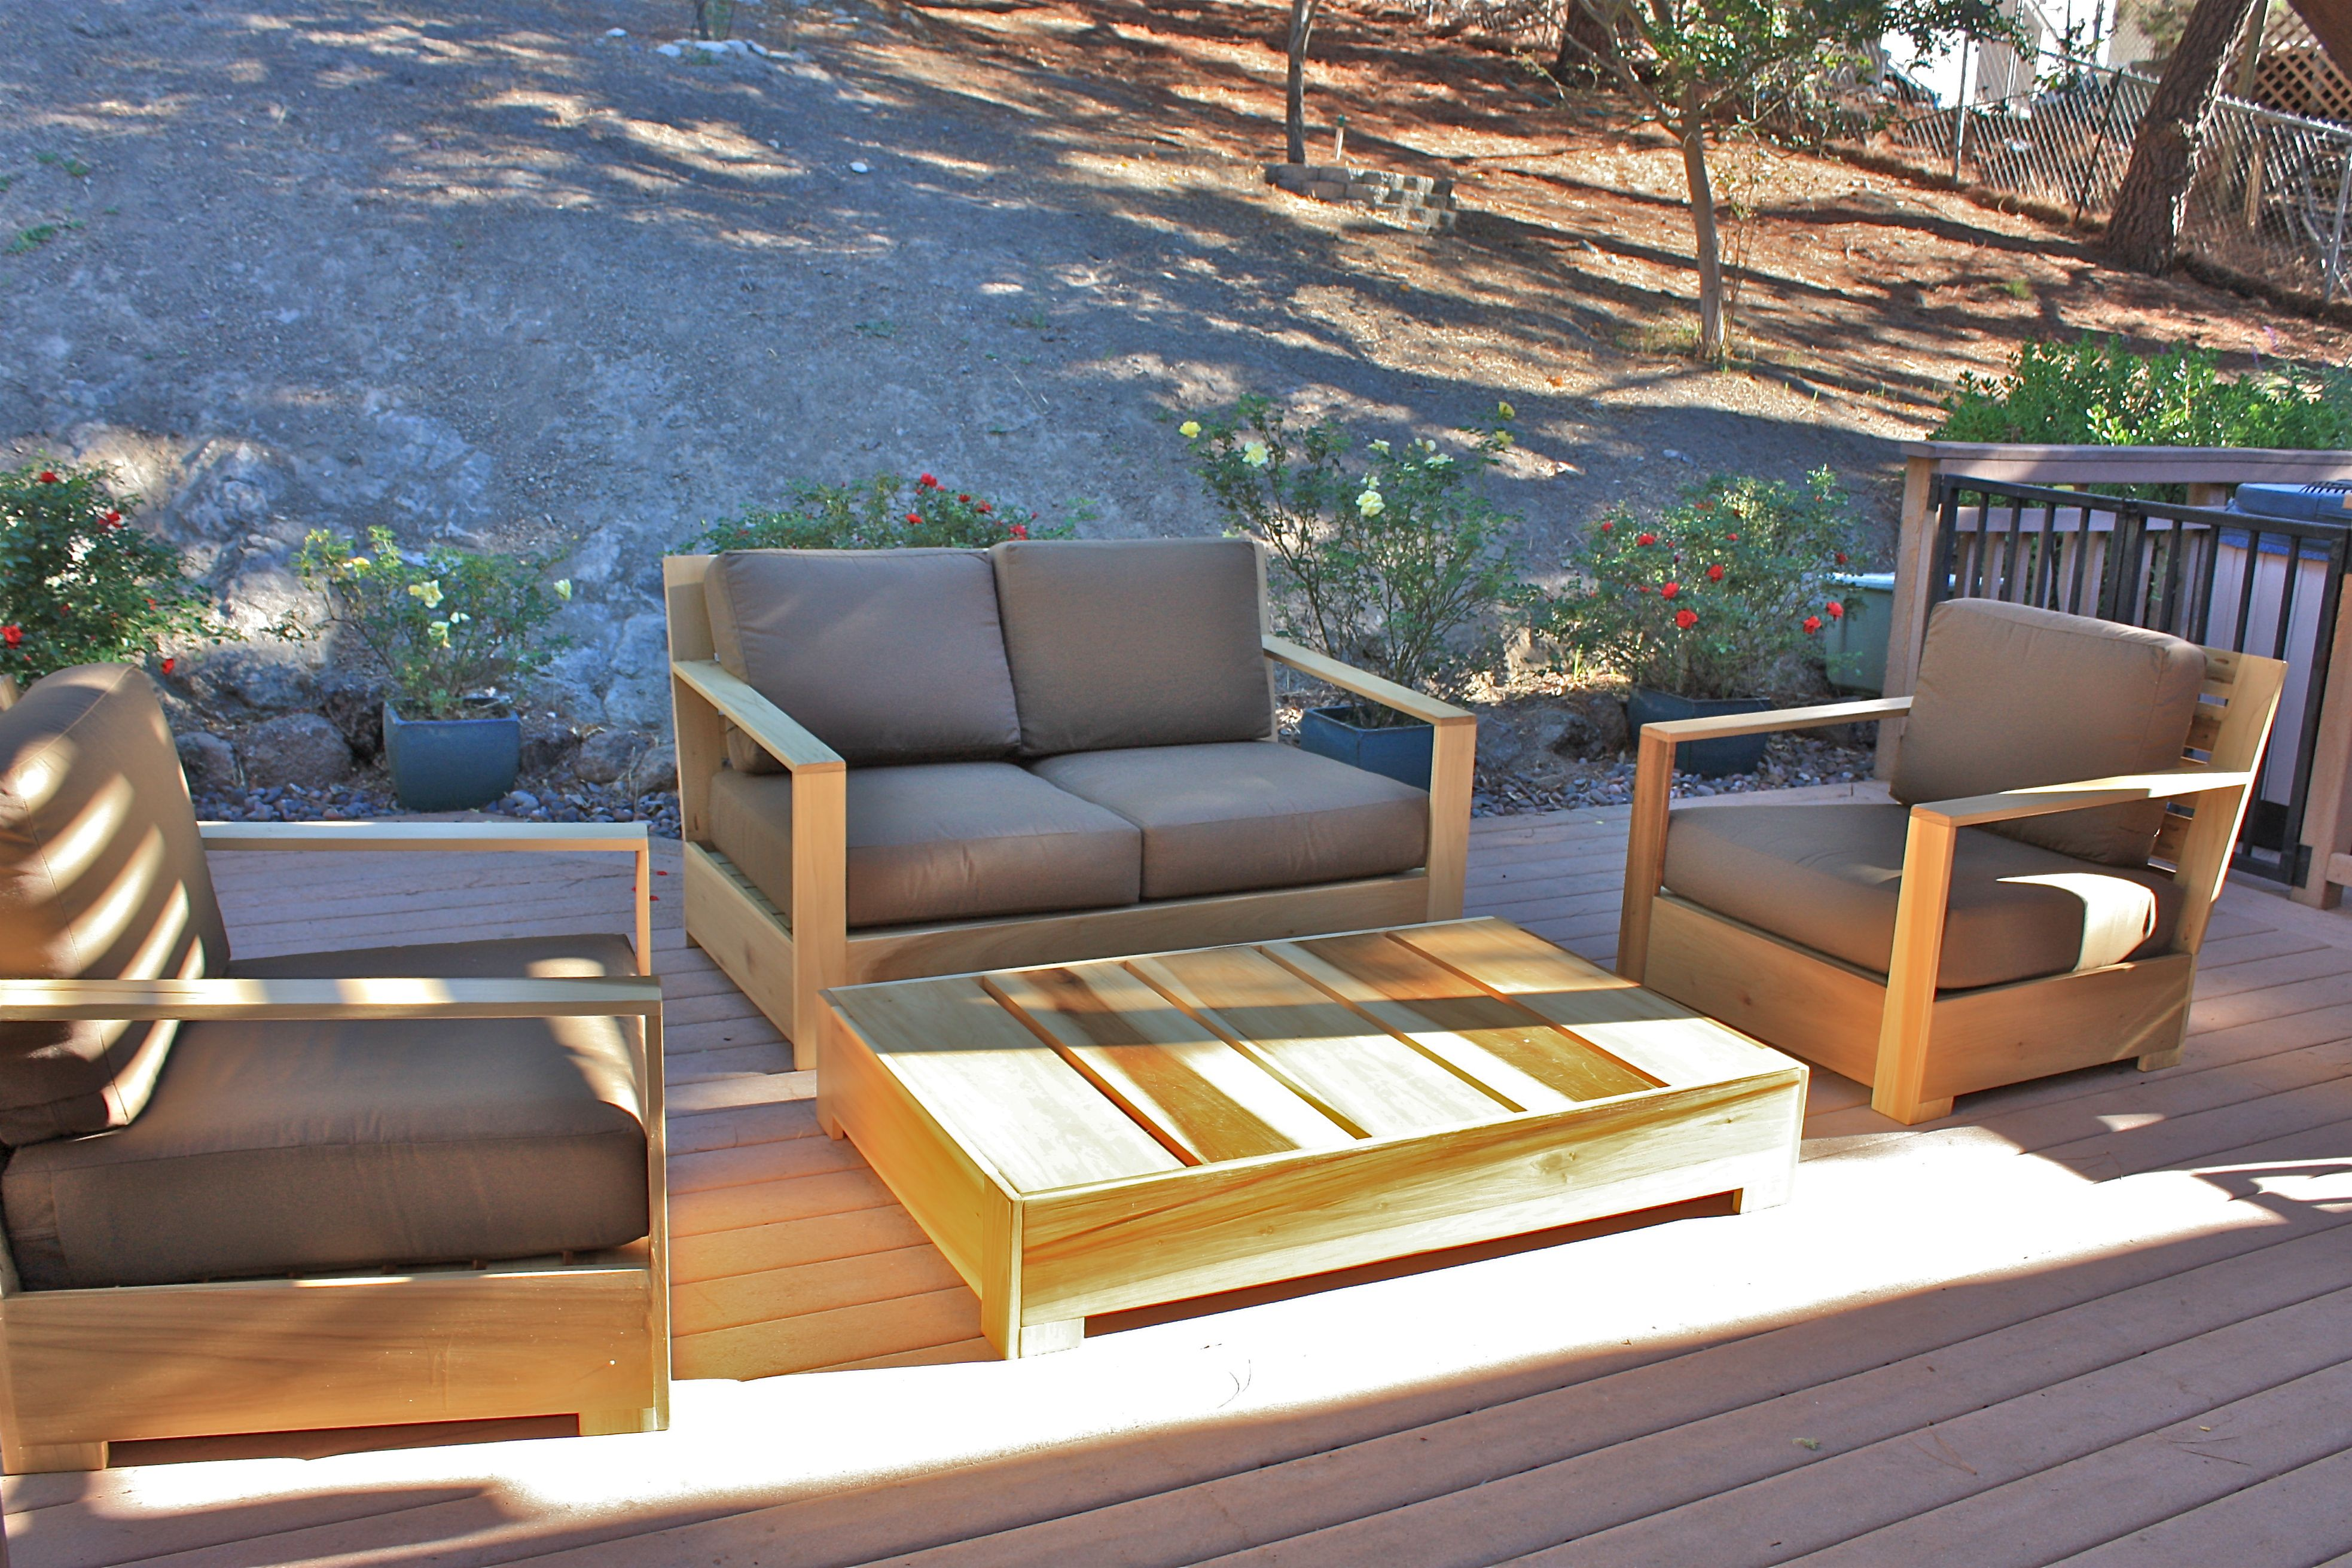 Ana White Outdoor Patio Set Diy Projects Patio Set 640 x 480